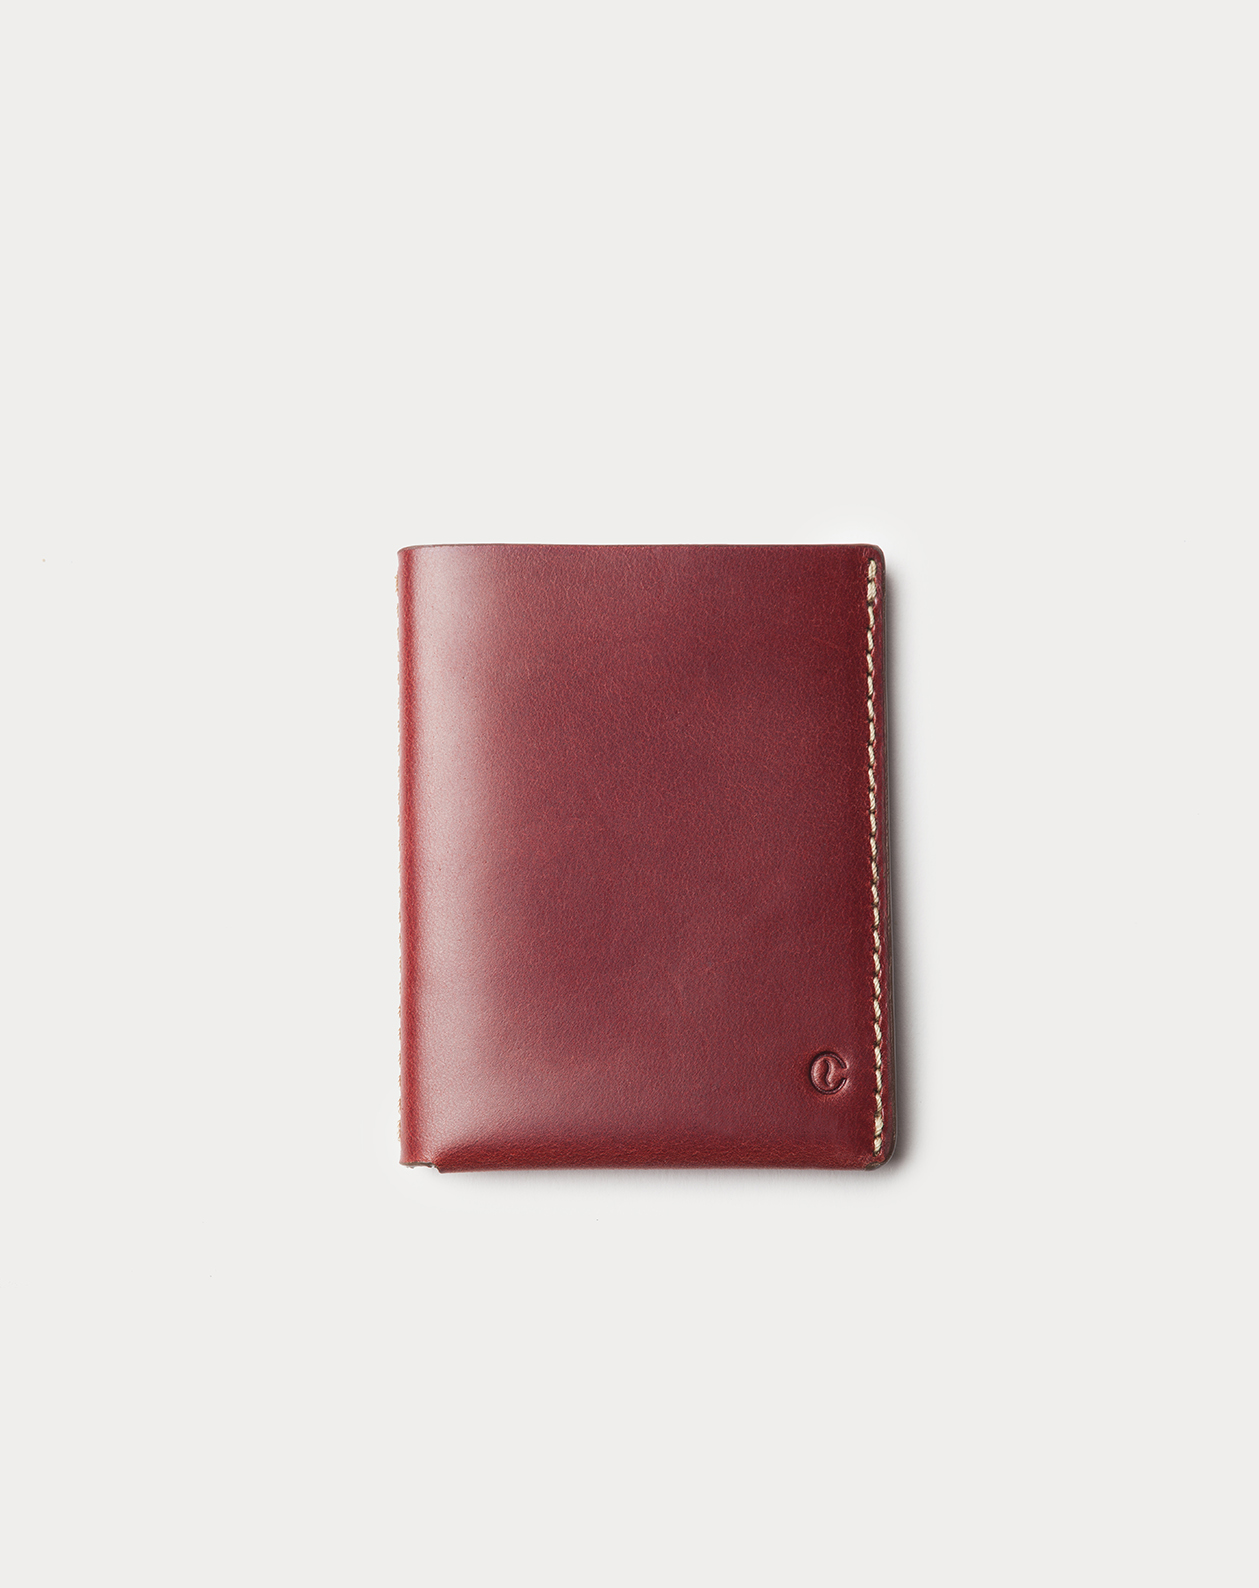 Ultra Slim Leather Wallet Jamaica Berry